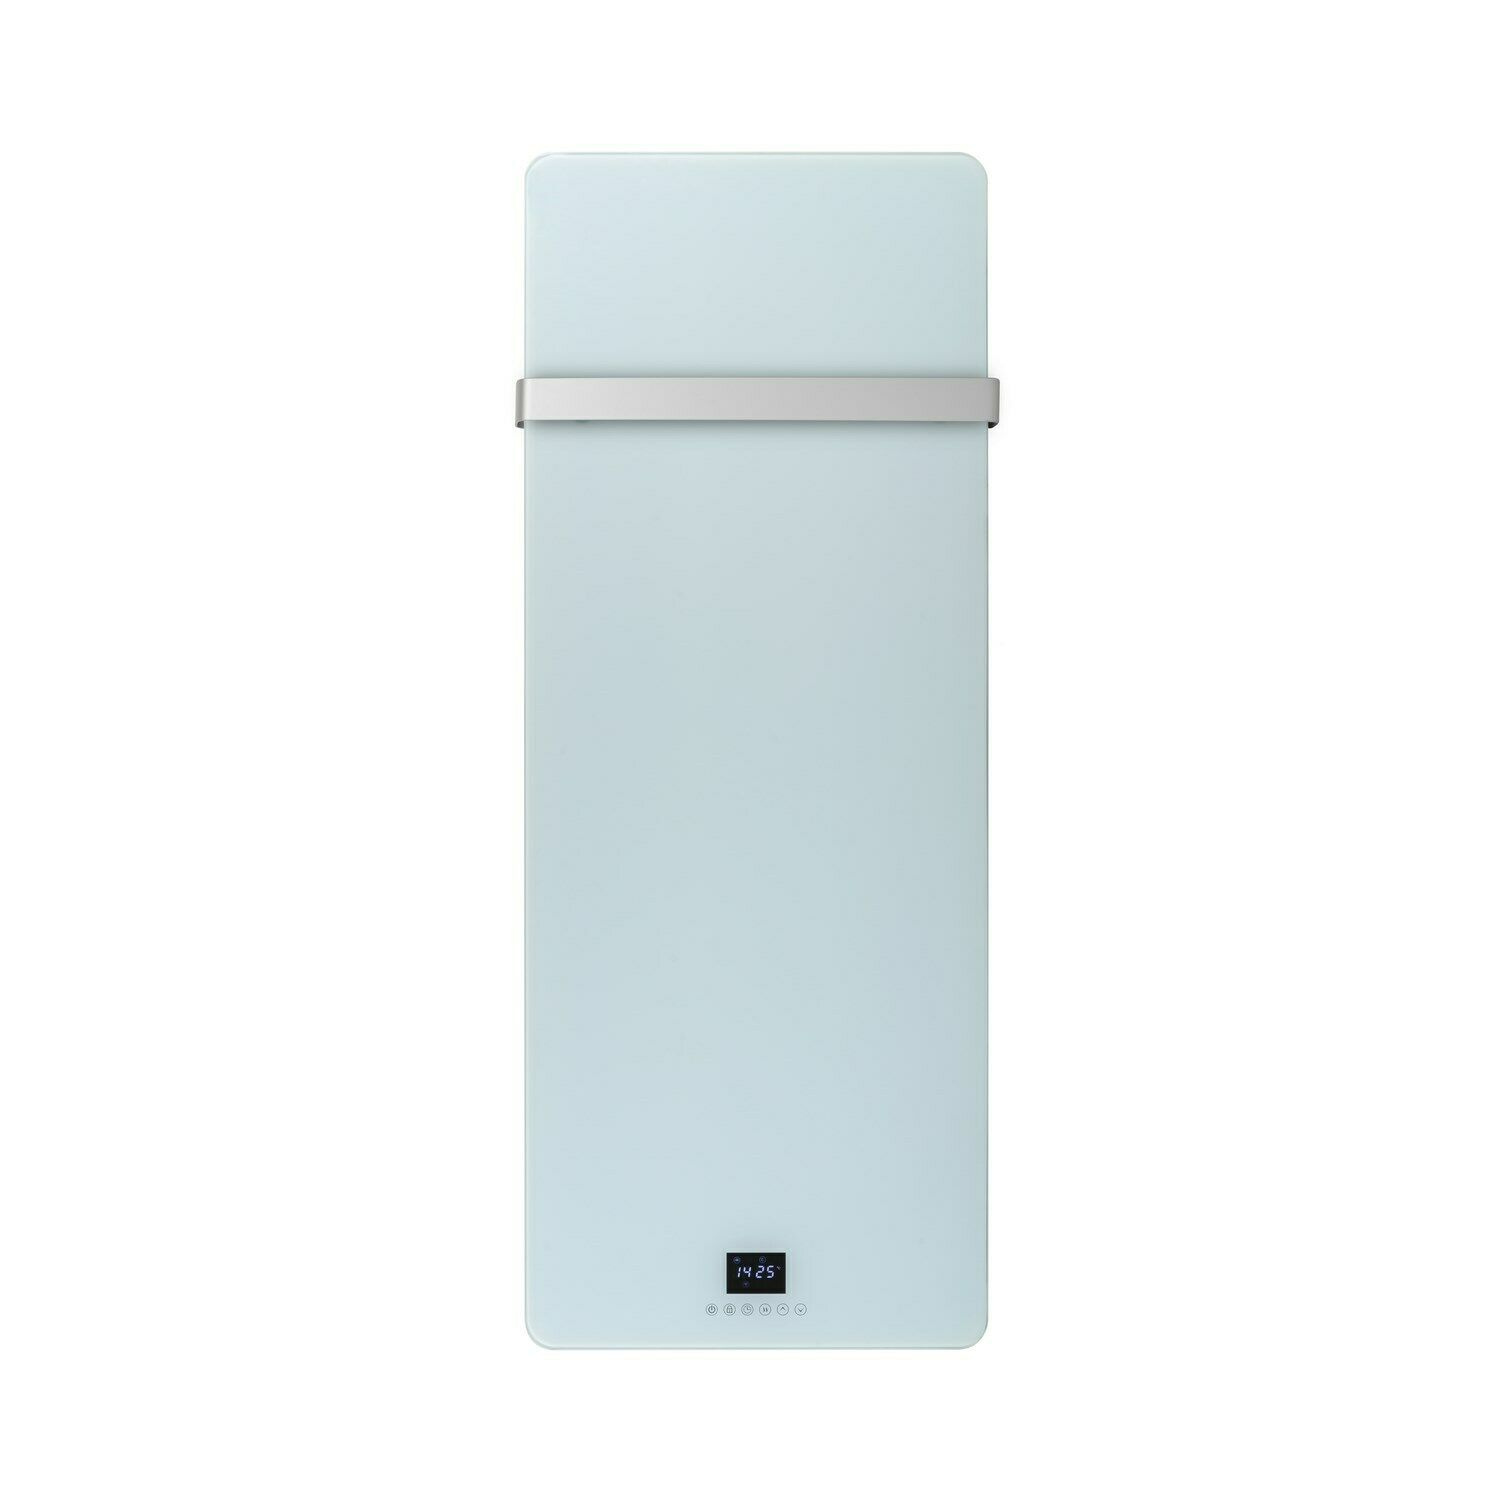 Low Energy 850w Designer Glass Infrared Wall Mounted Heater with Towel Rail and